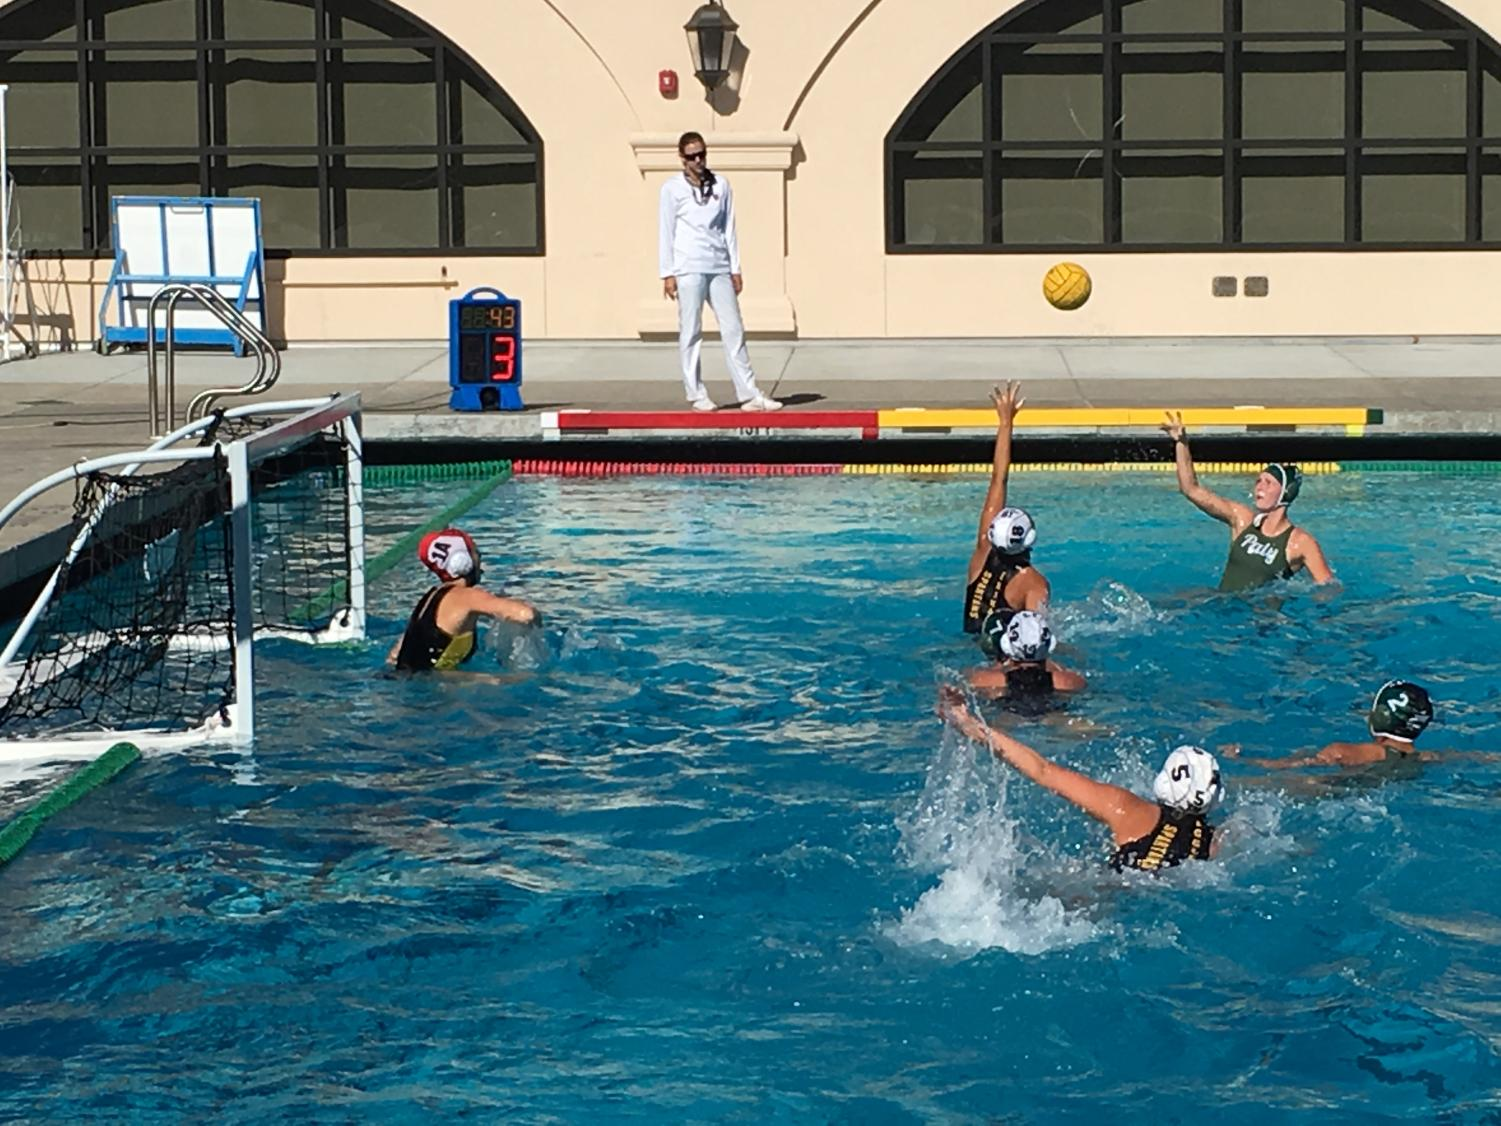 Sophomore Lulu Gaither shoots the ball in the final seconds of the possession. The Palo Alto High School water polo team lost 8-7 against Mountain view on Tuesday. Photo: Ryan Wisowaty.